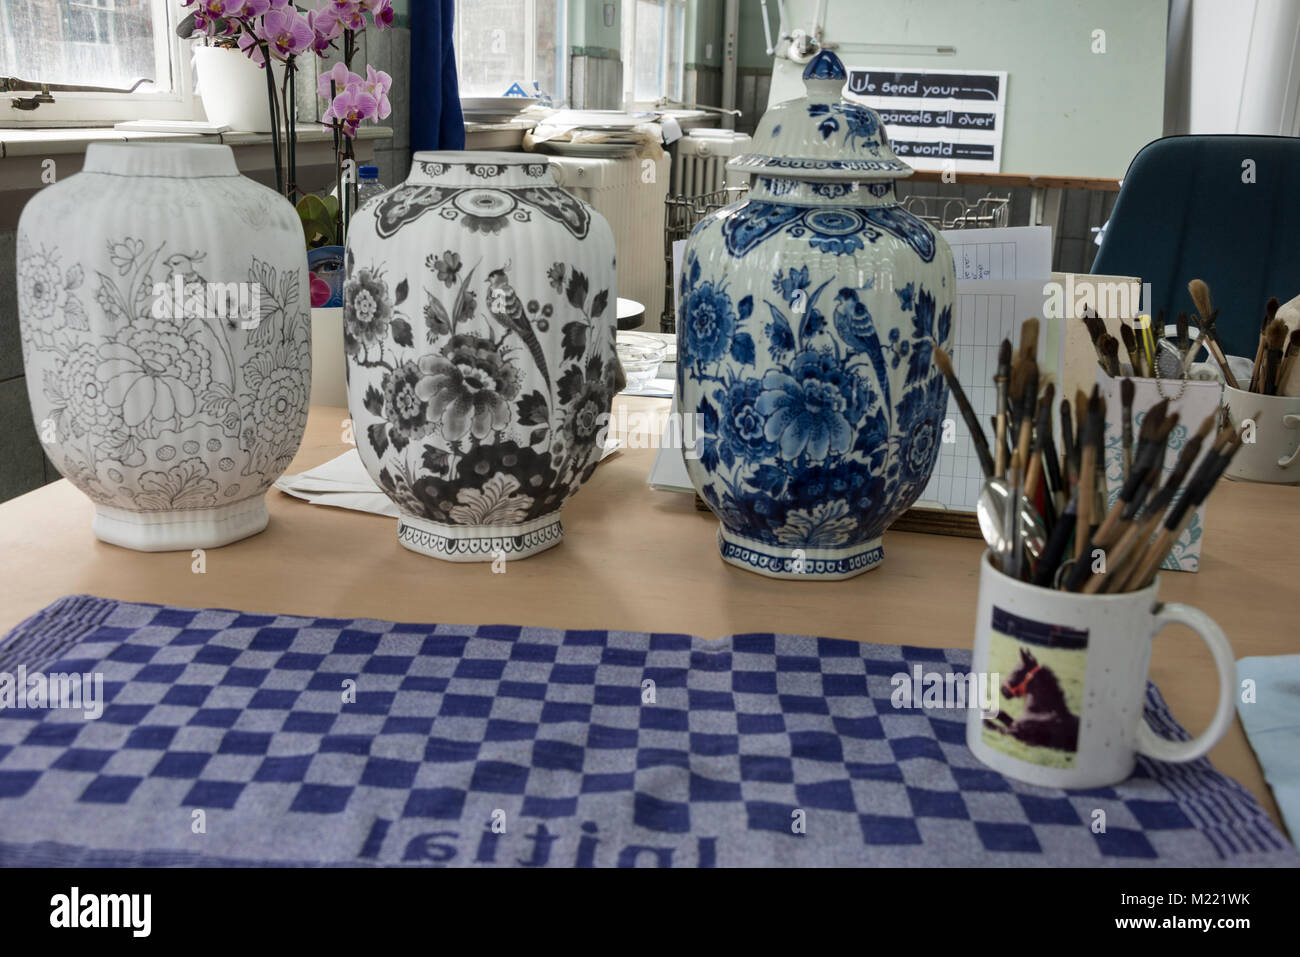 Three vases at the world's famous Delftware factory: Royal Delft in Delft, Holland.  1st vase drawn the outlines - Stock Image